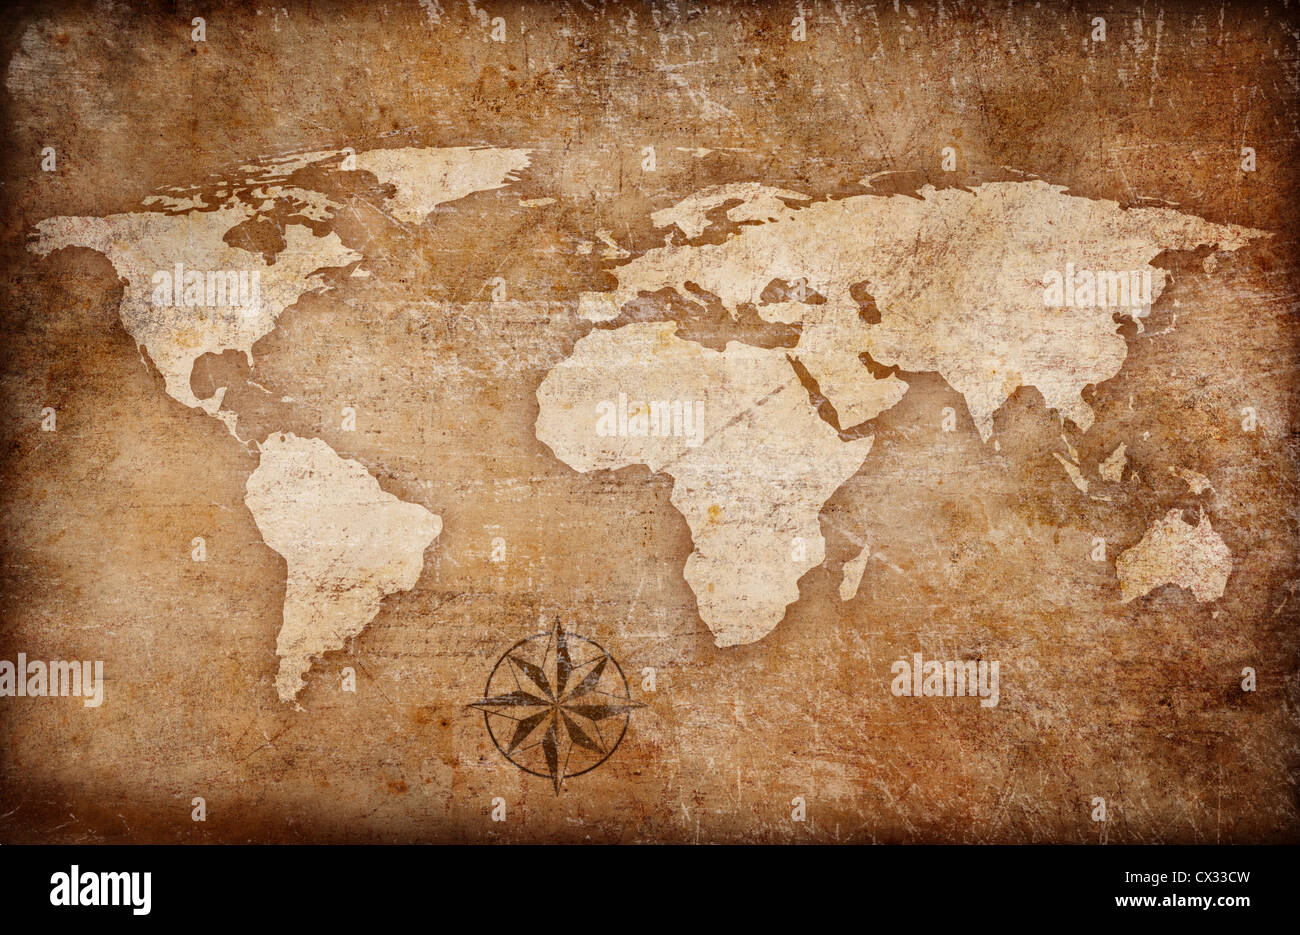 Grunge world map background with rose compass stock photo 50470361 grunge world map background with rose compass gumiabroncs Gallery